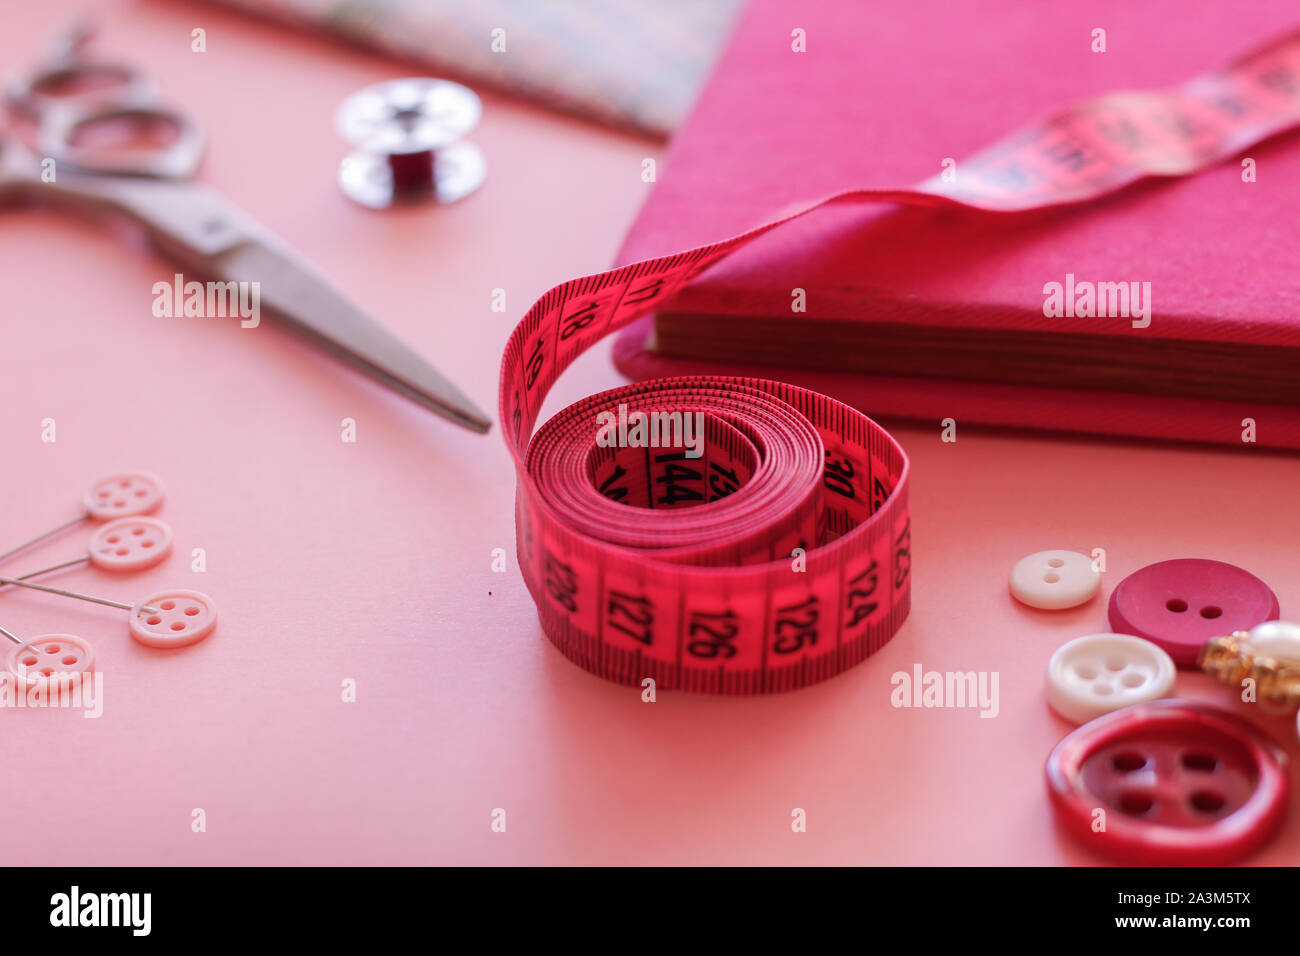 Measure tape in pink color with other sewing objects Stock Photo